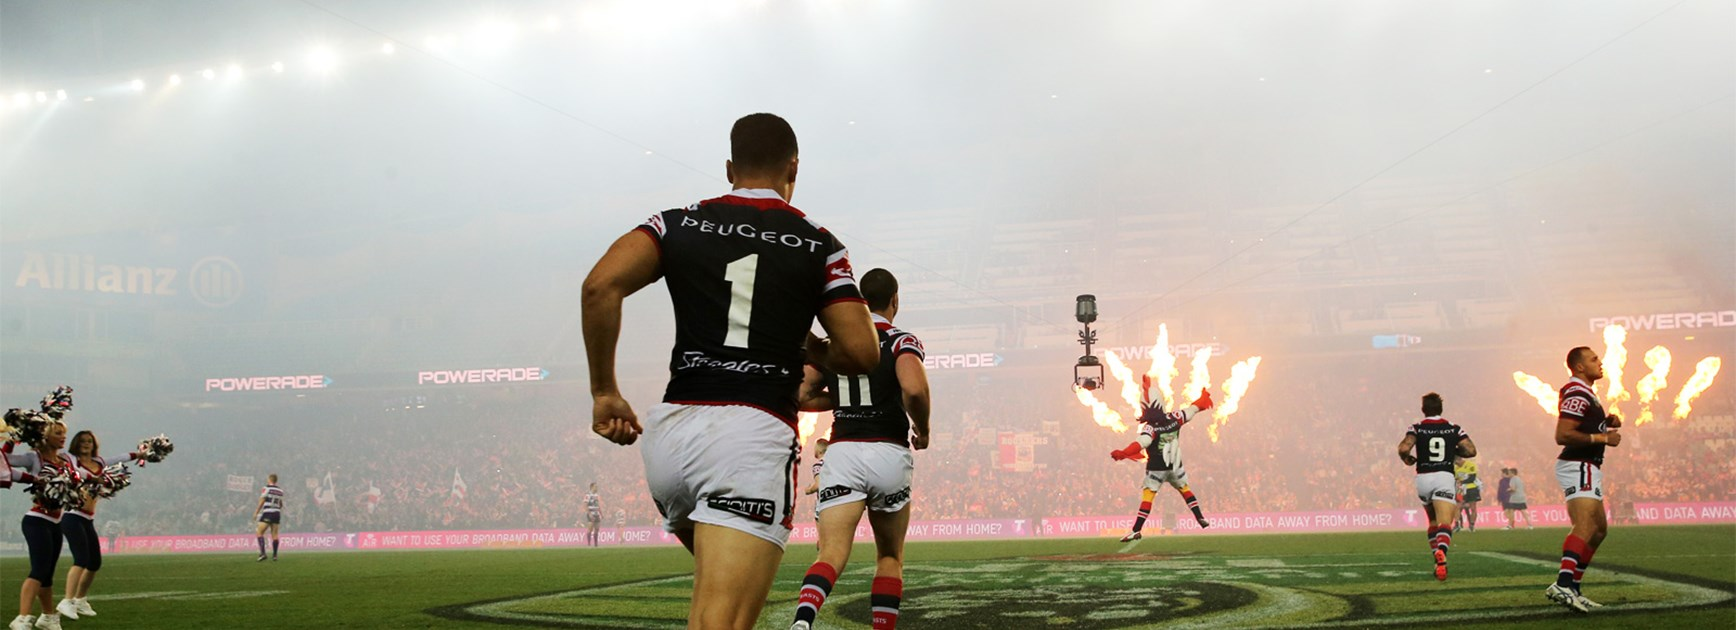 Roger Tuivasa-Sheck has been a major weapon for the Sydney Roosters this season.